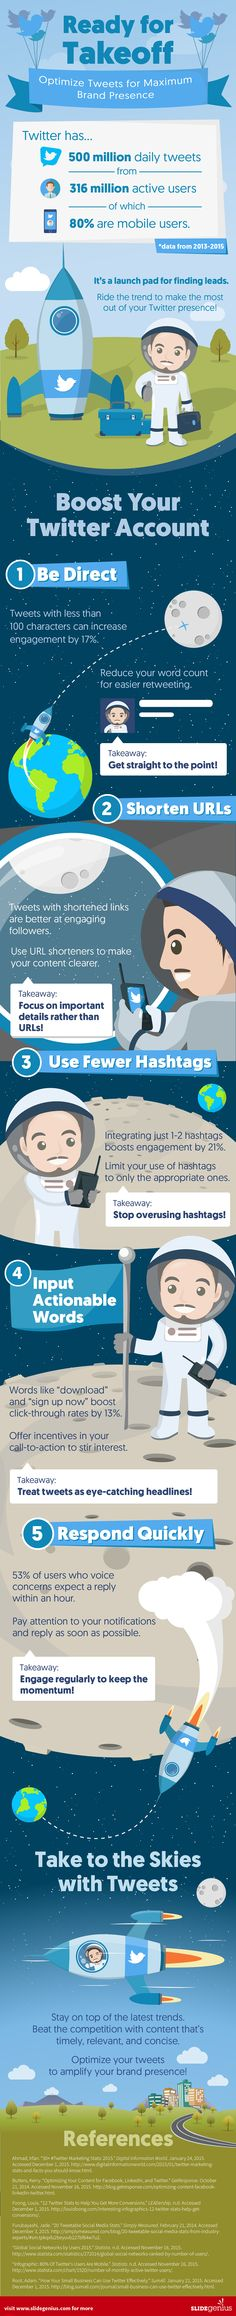 Ready for Takeoff: Optimize Tweets for Maximum Brand Presence - #infographic